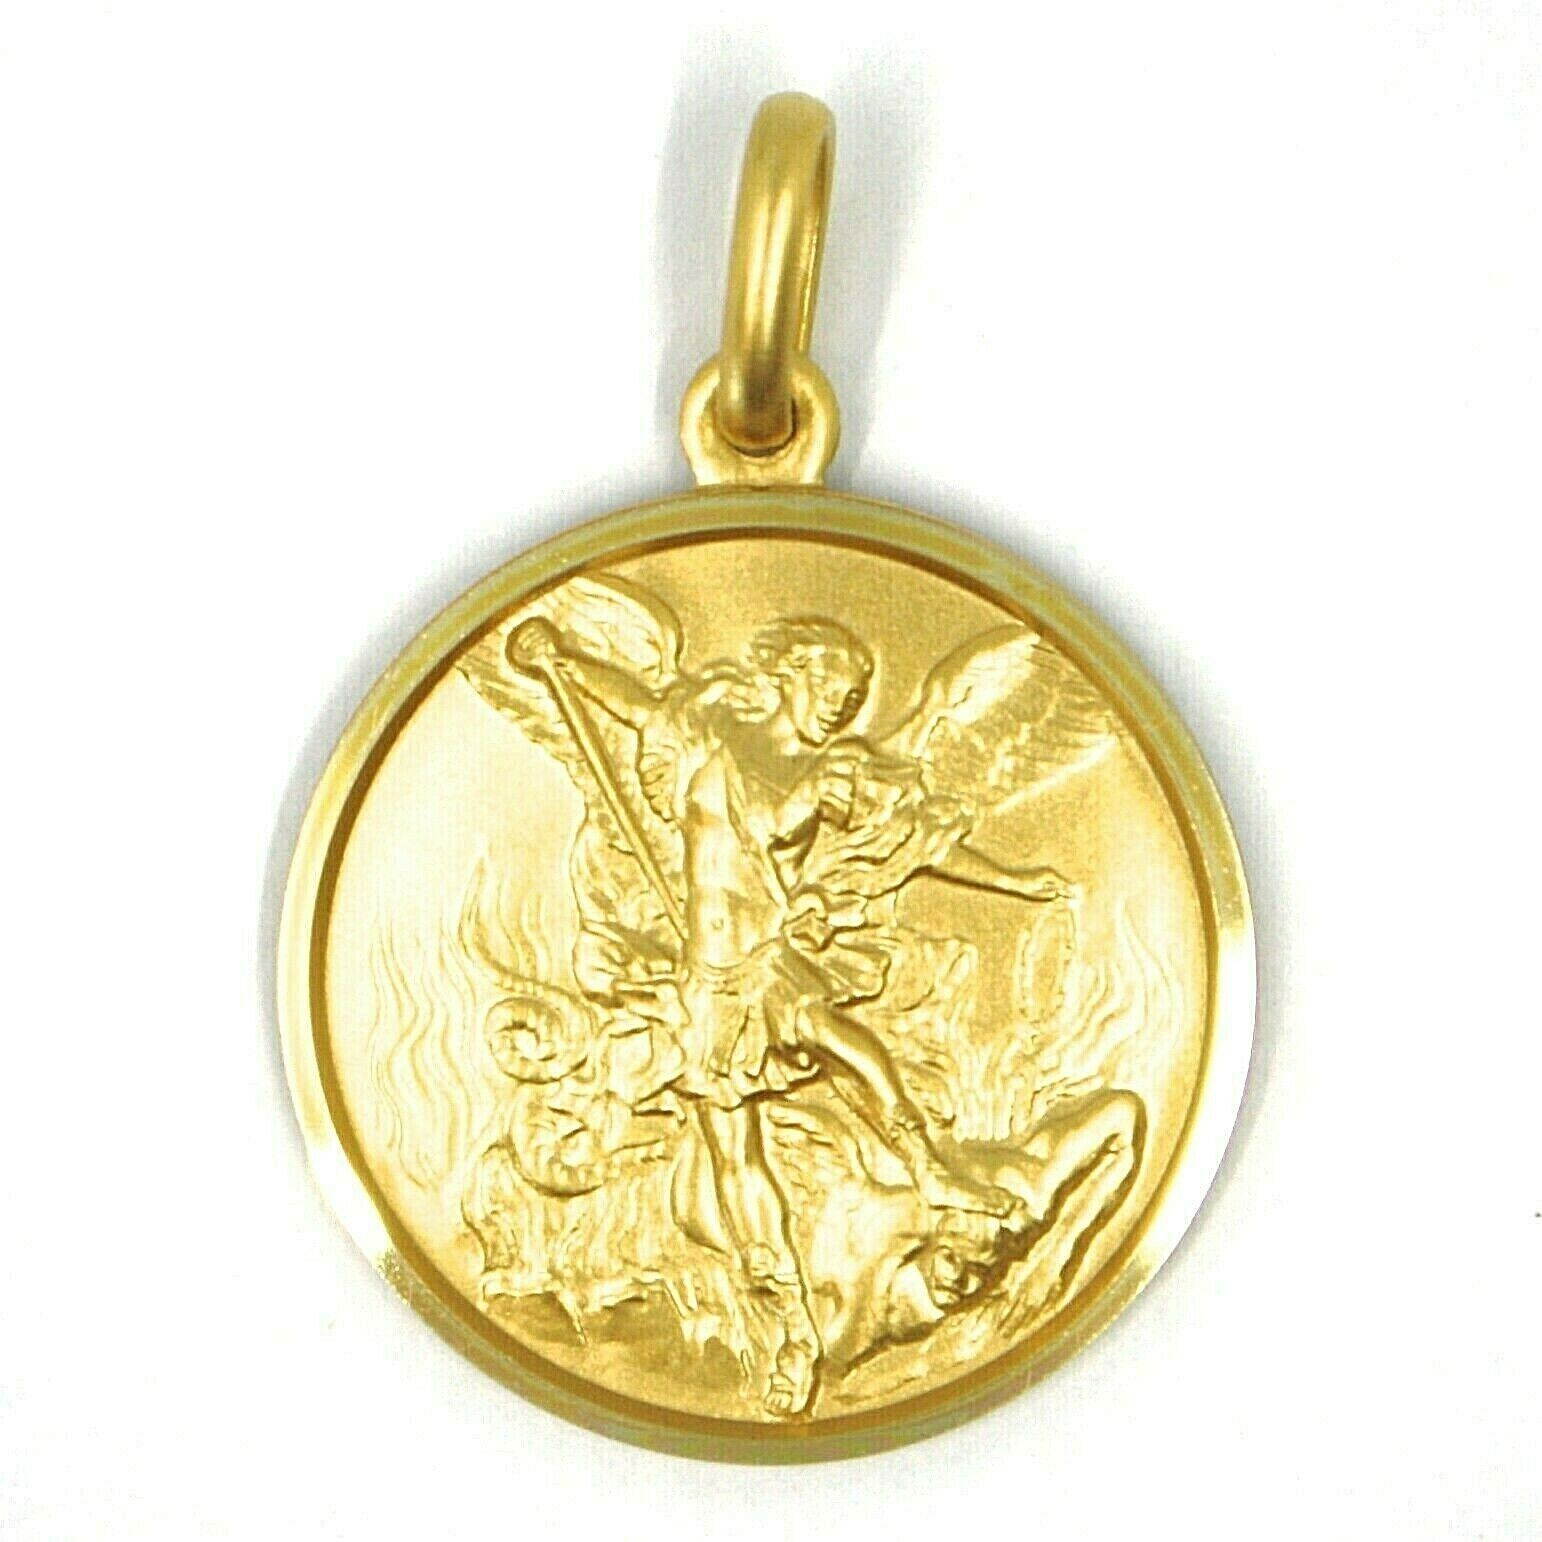 SOLID 18K YELLOW GOLD SAINT MICHAEL ARCHANGEL 21 MM MEDAL, PENDANT MADE IN ITALY